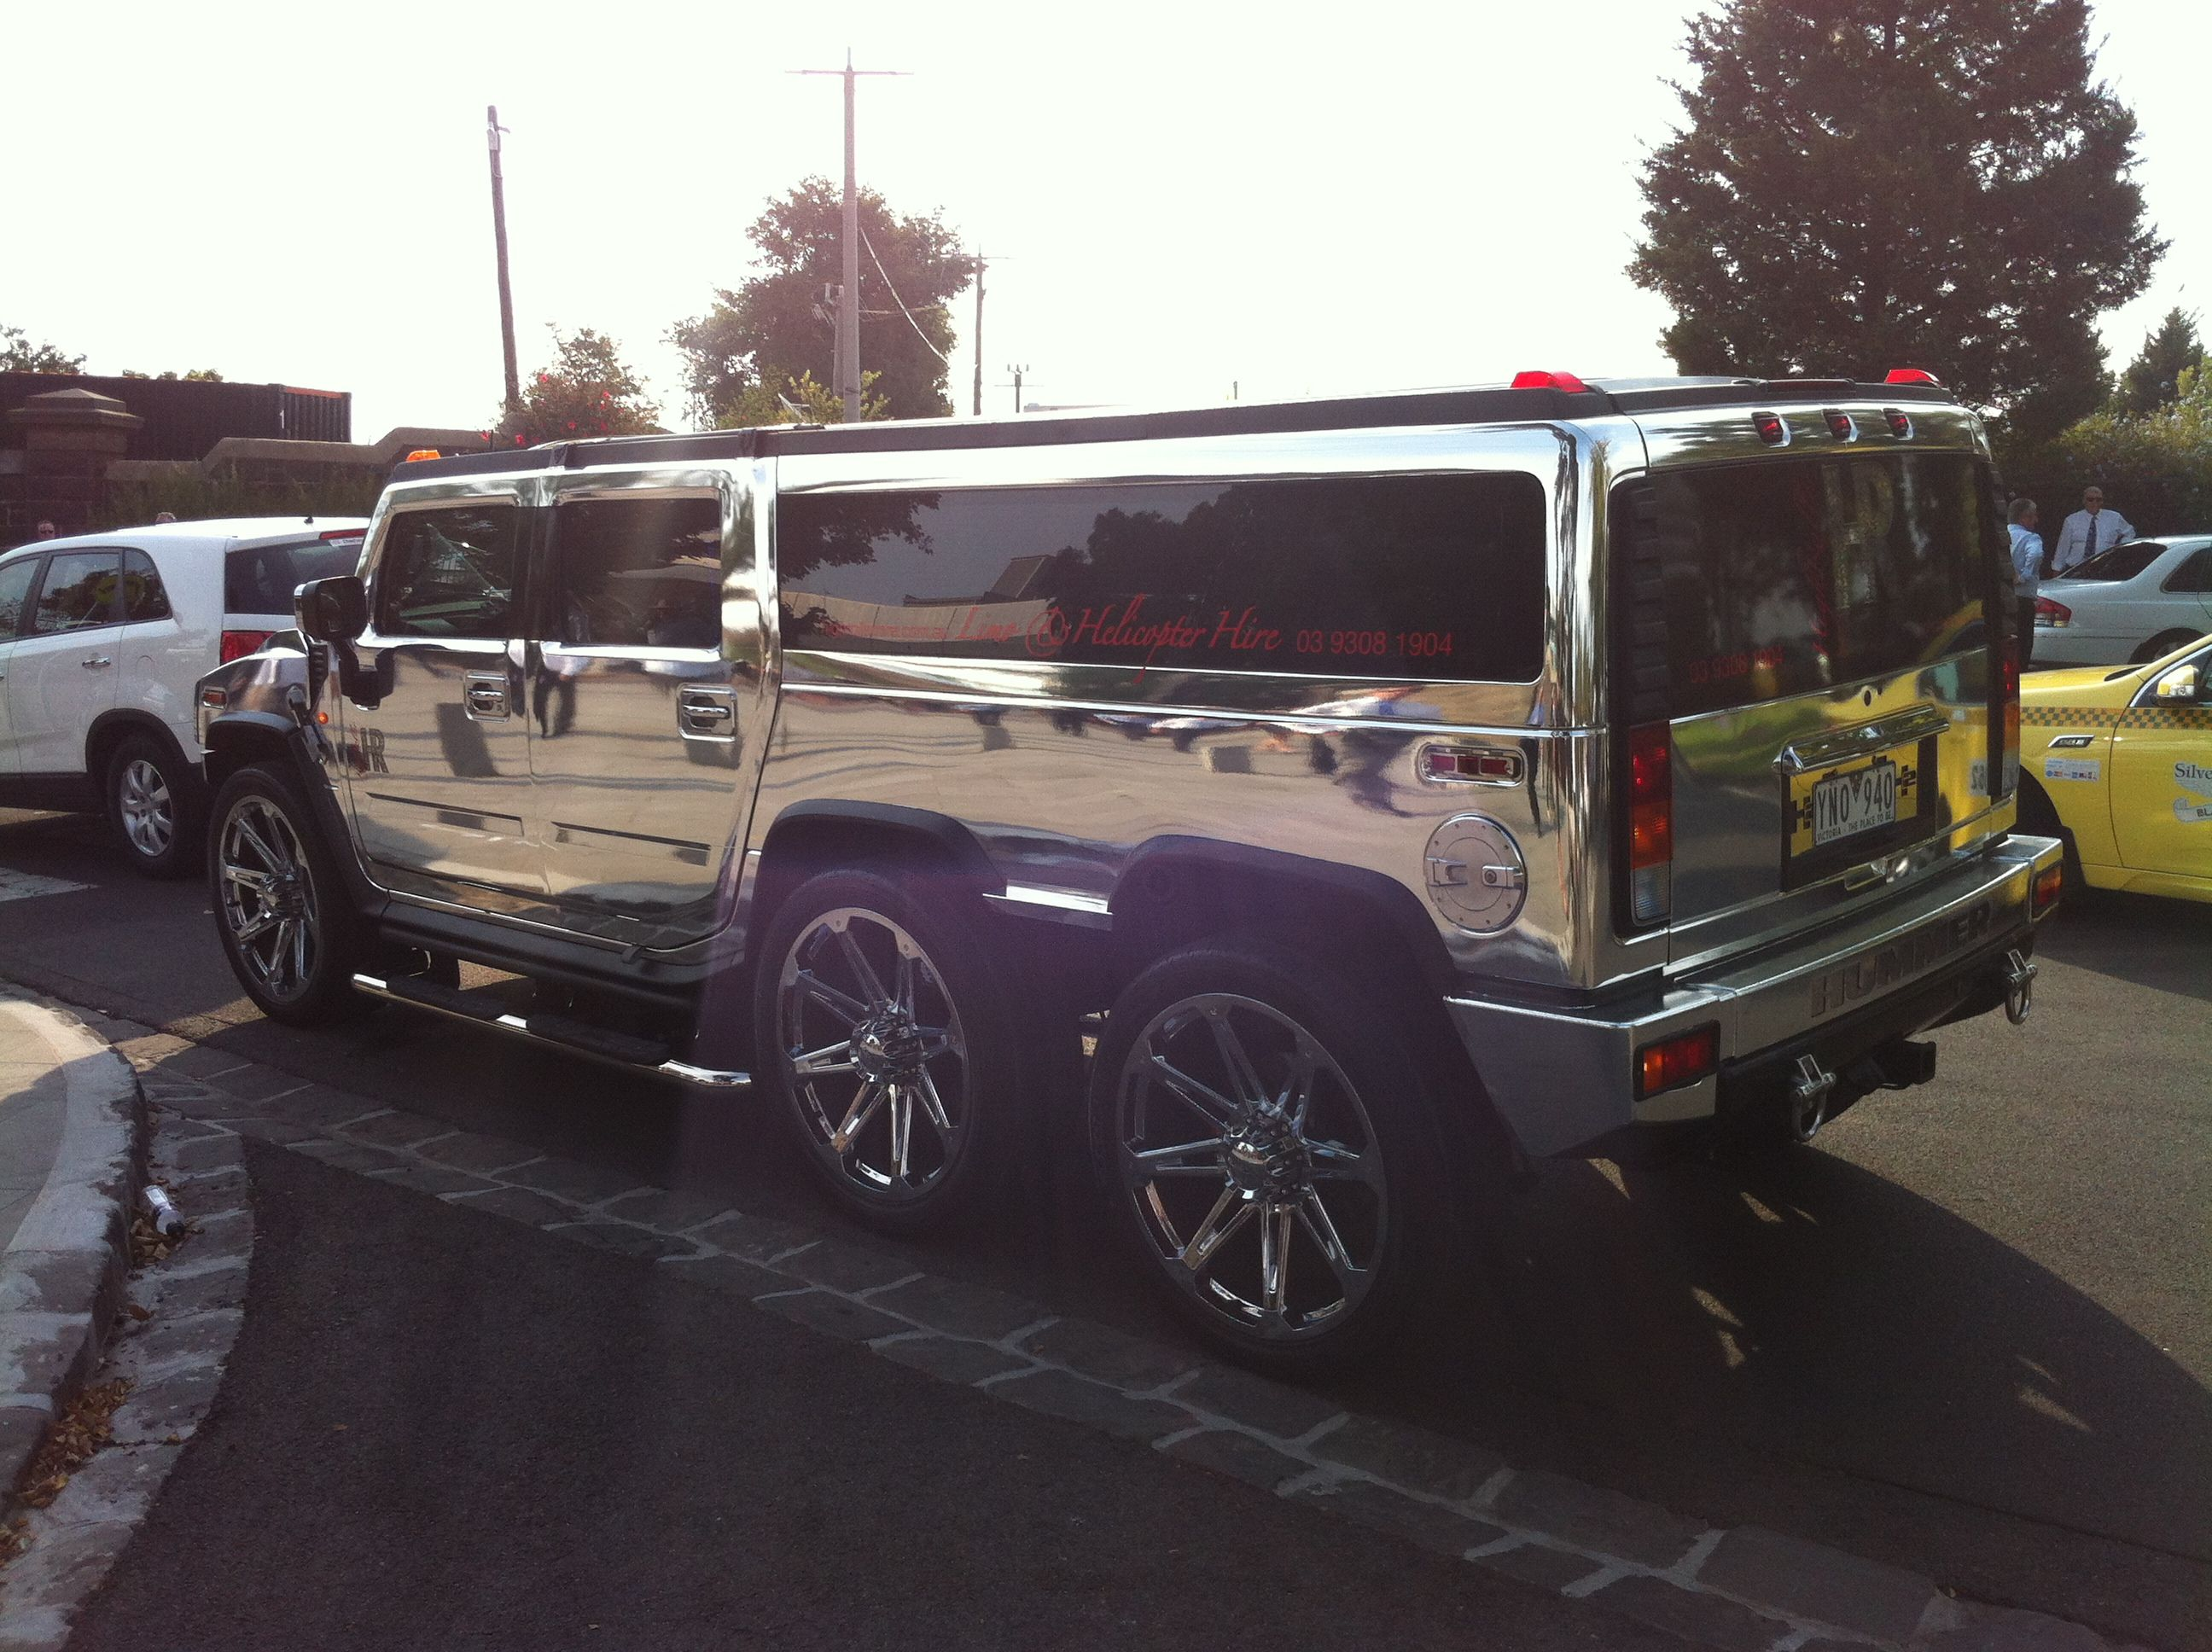 Red Hummer Limo I would love this for our wedding Wedding limos